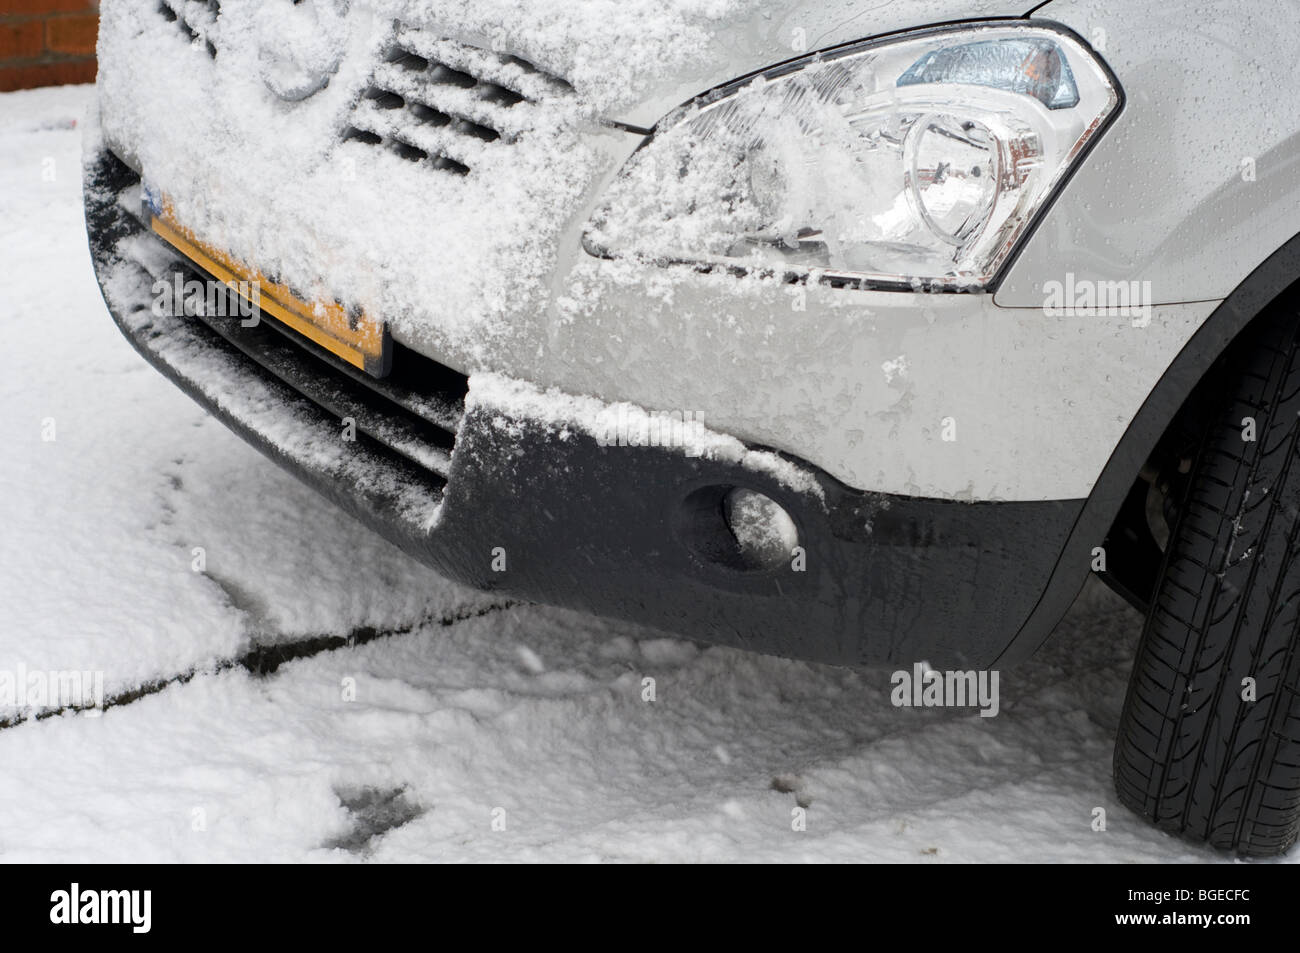 Detail of a snow covered car parked at the side of a road Stock Photo